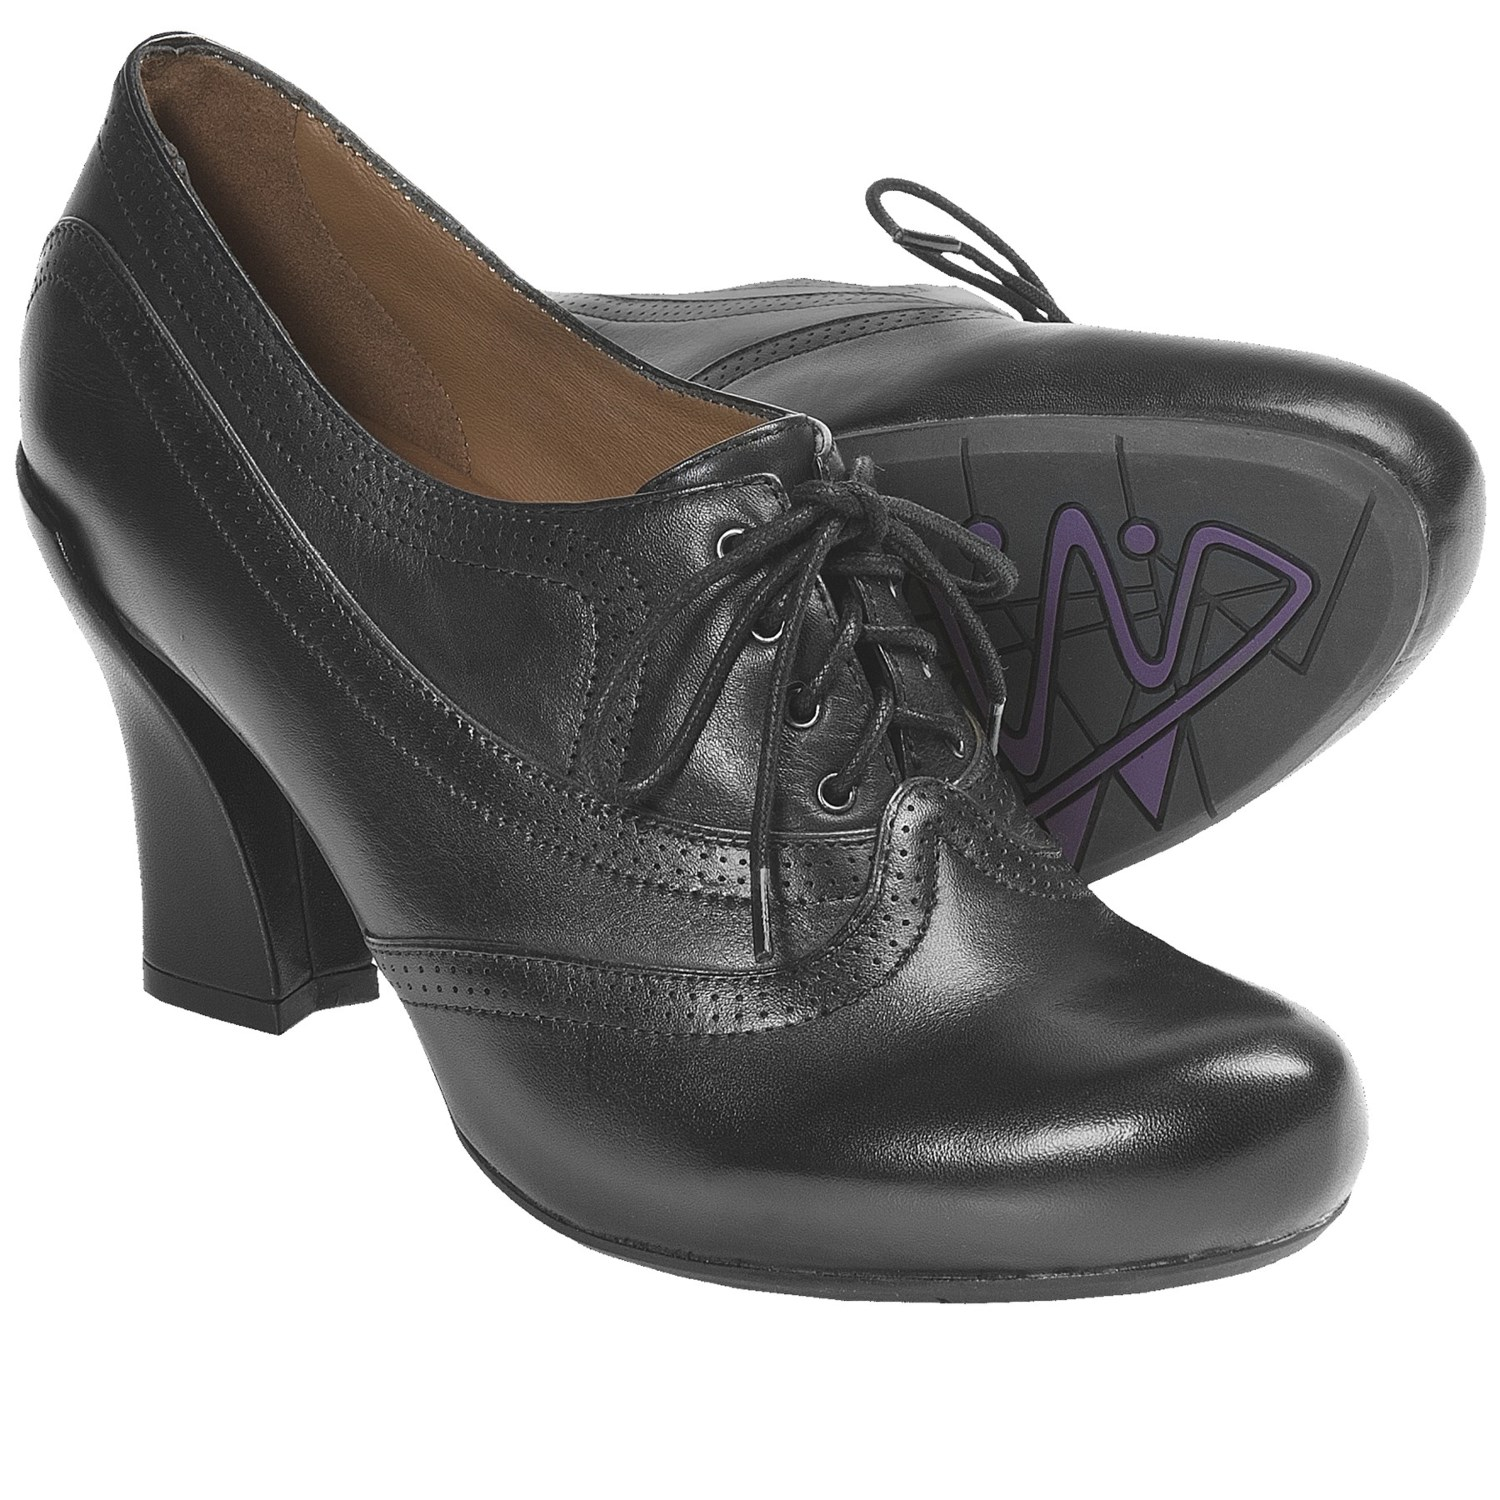 Black Oxford Heels Shoes for Women